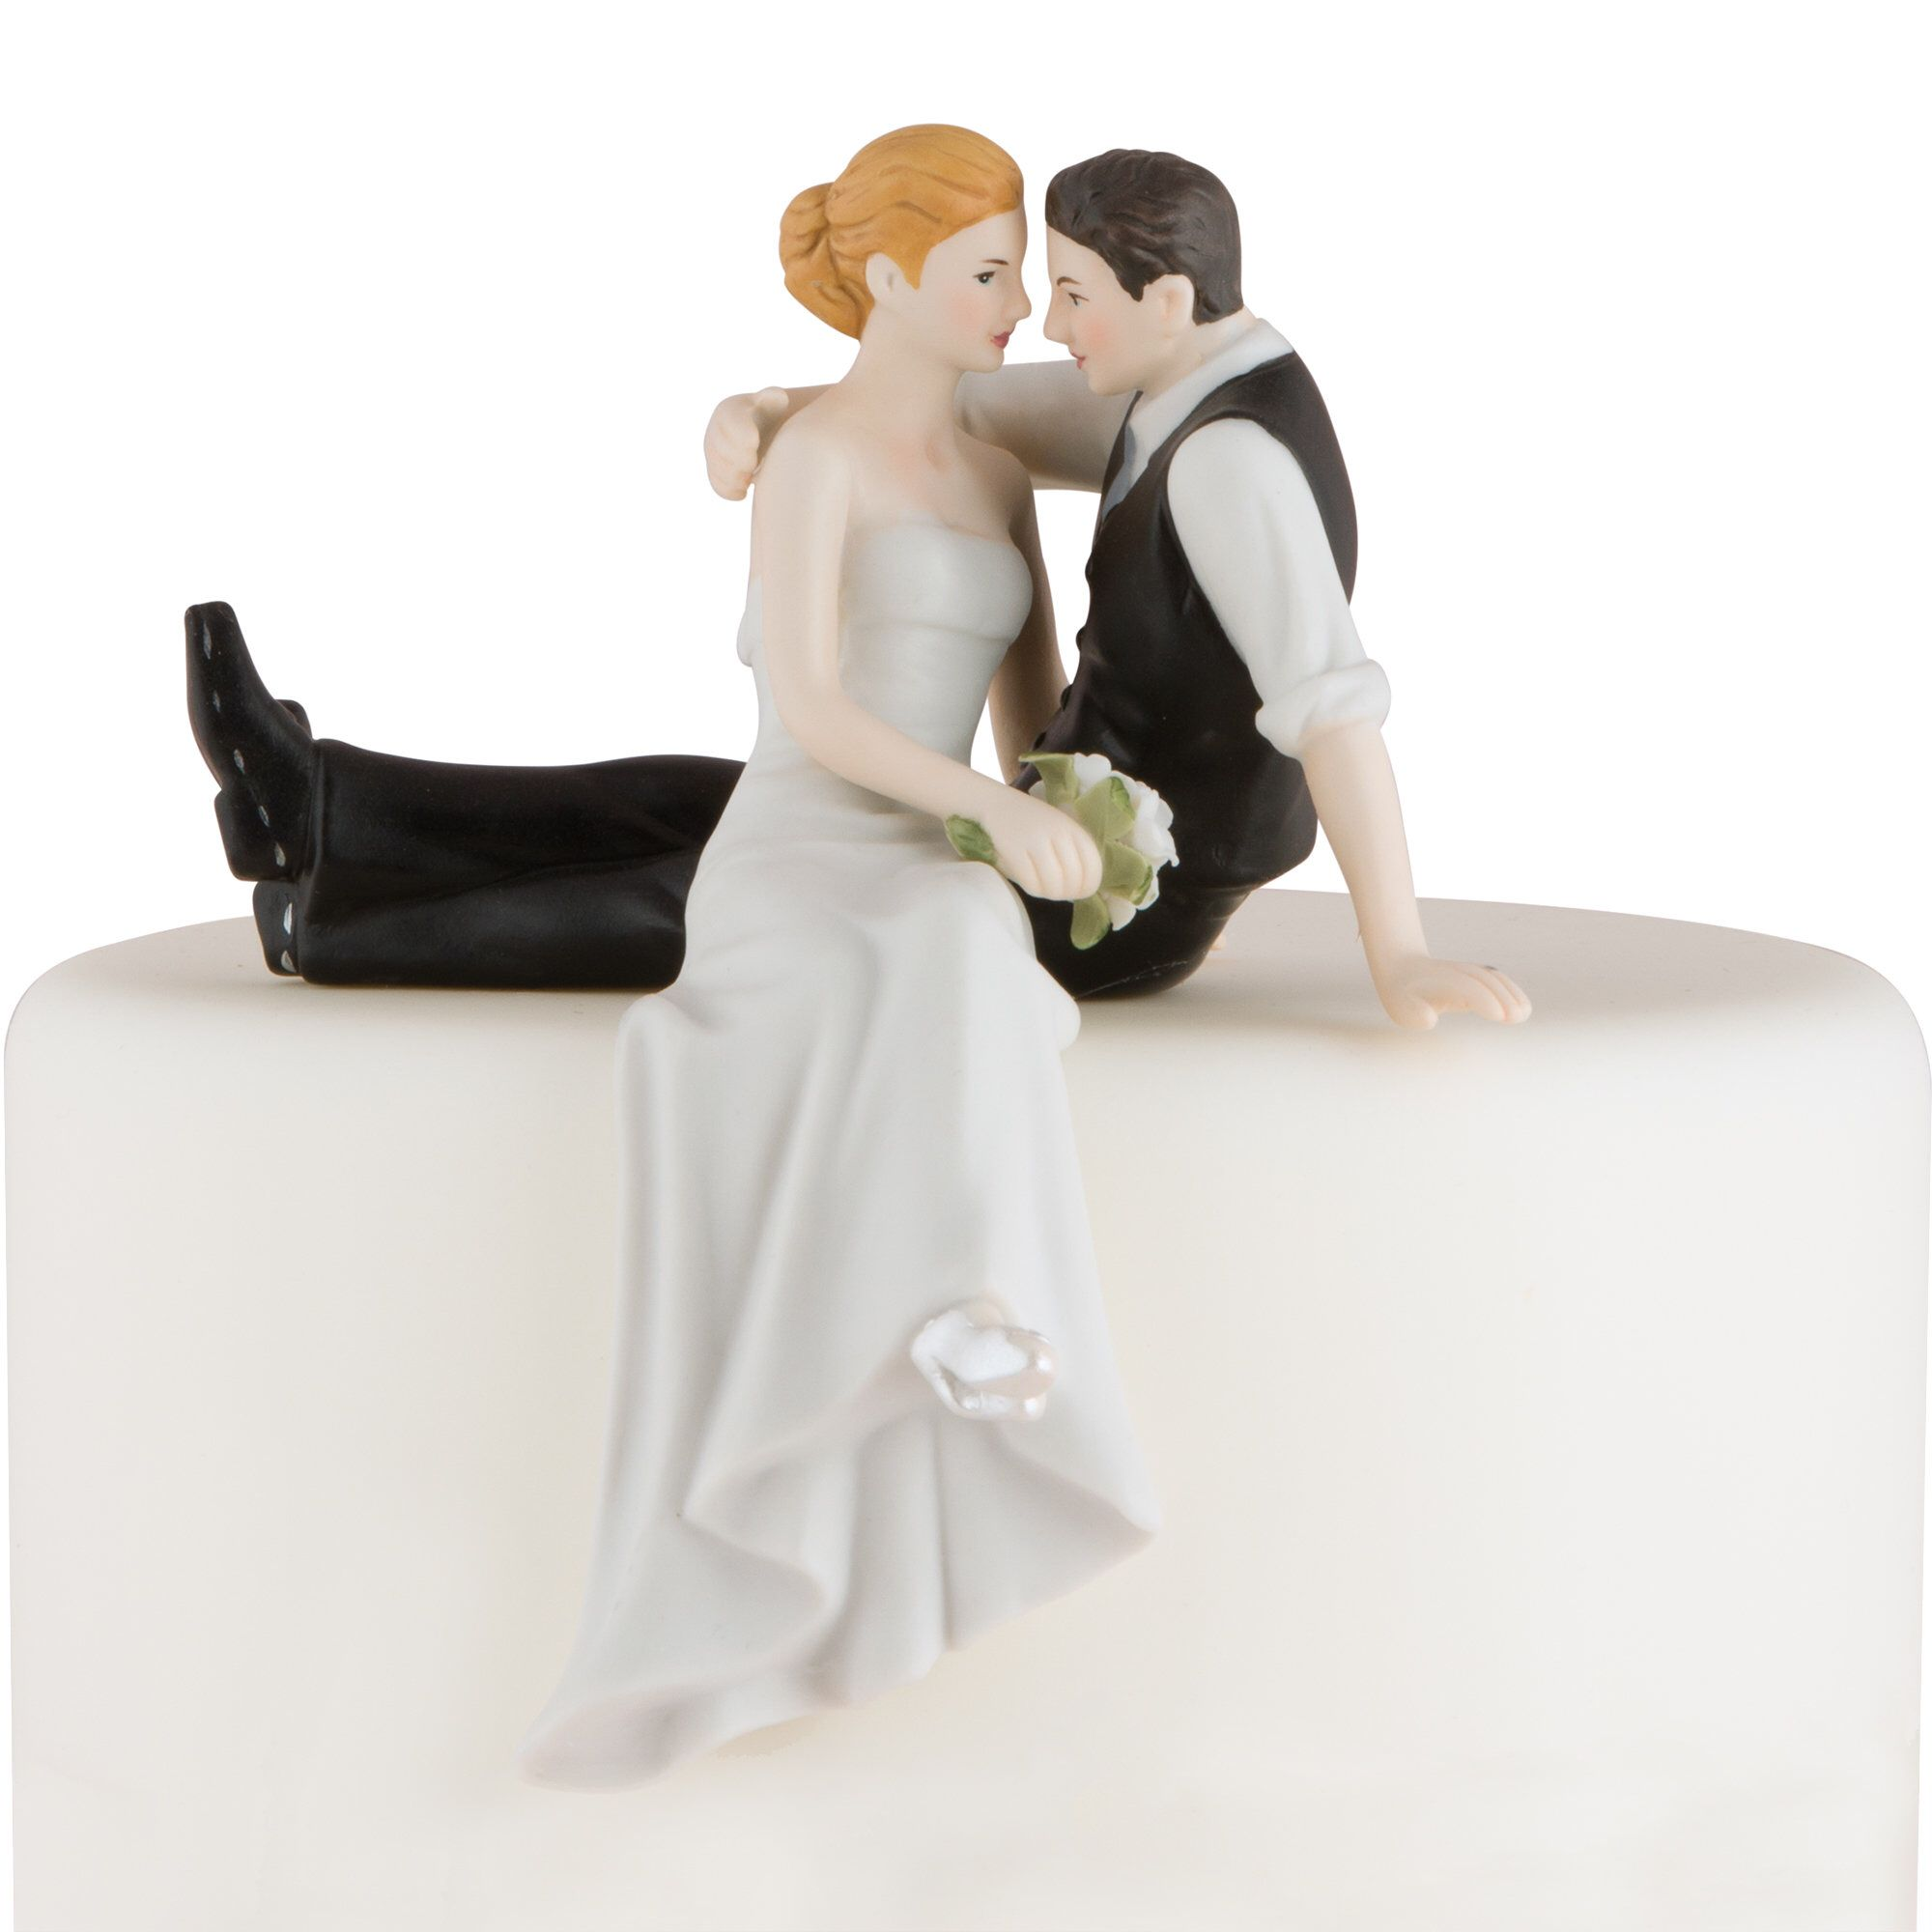 Love Bride And Groom Cake Topper Bride And Groom Cake Toppers Wedding Cake Fresh Flowers Wedding Cake Toppers